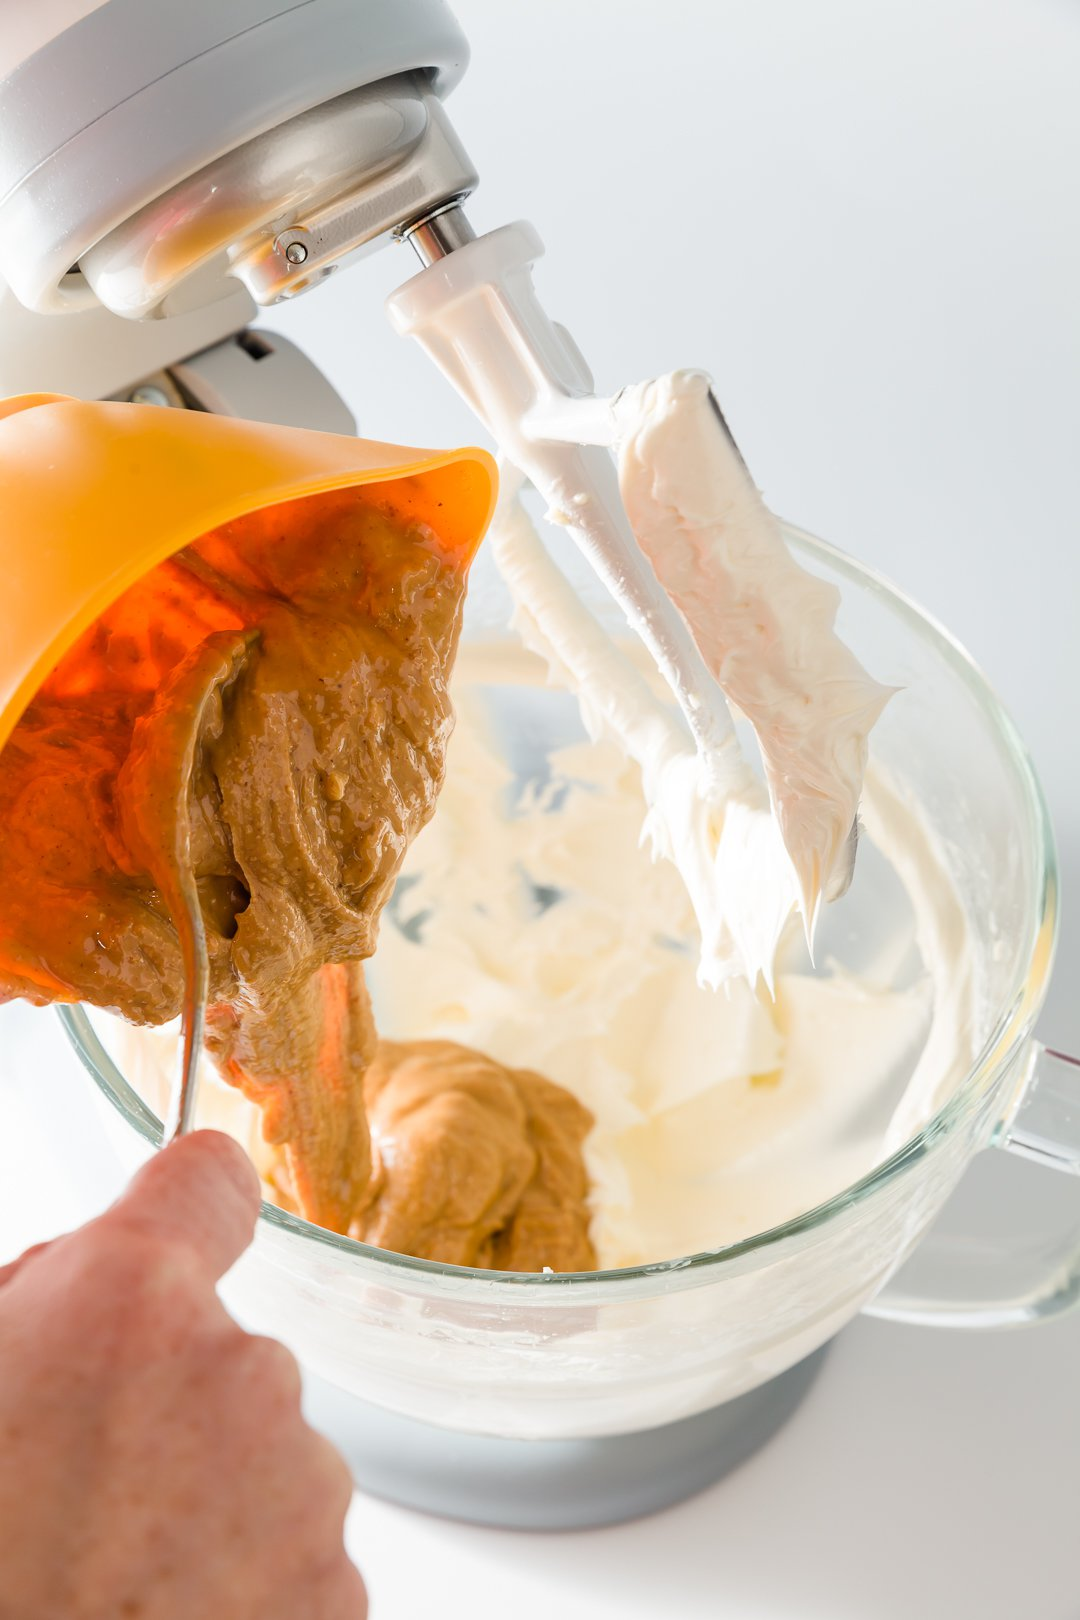 Adding peanut butter to peanut butter frosting